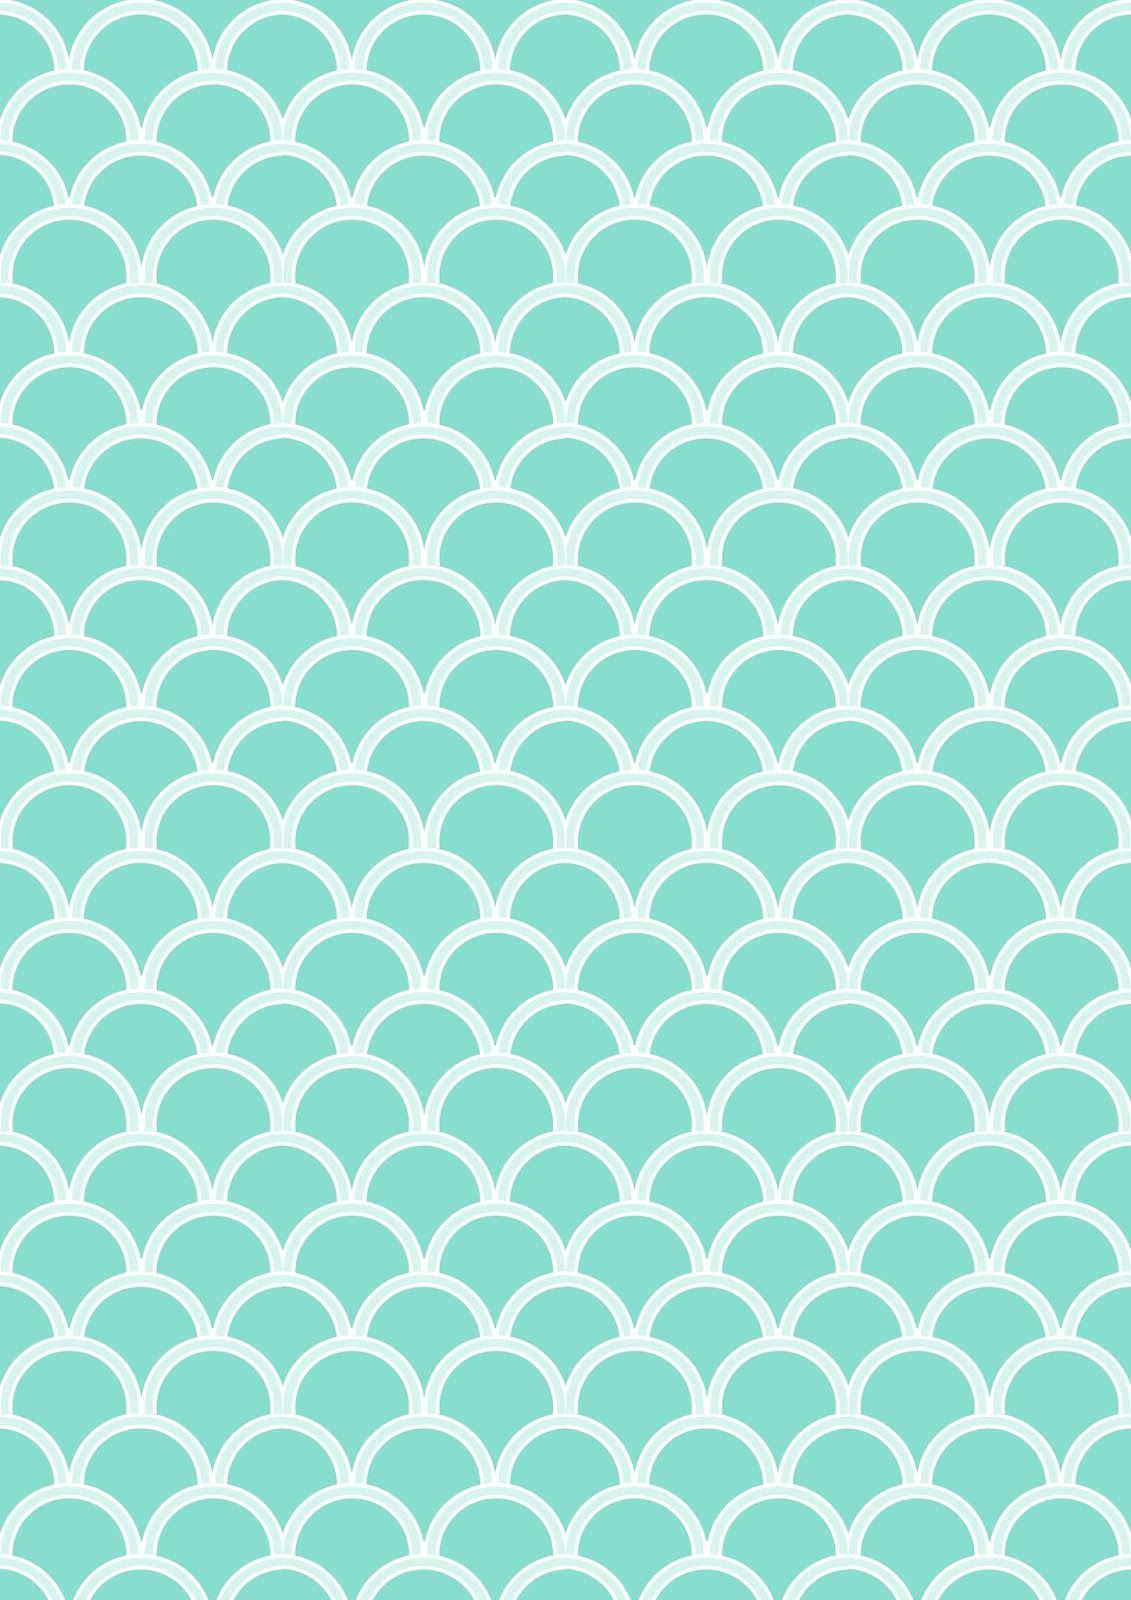 picture regarding Free Printable Pattern Paper referred to as Totally free electronic turquoise and white sbooking paper